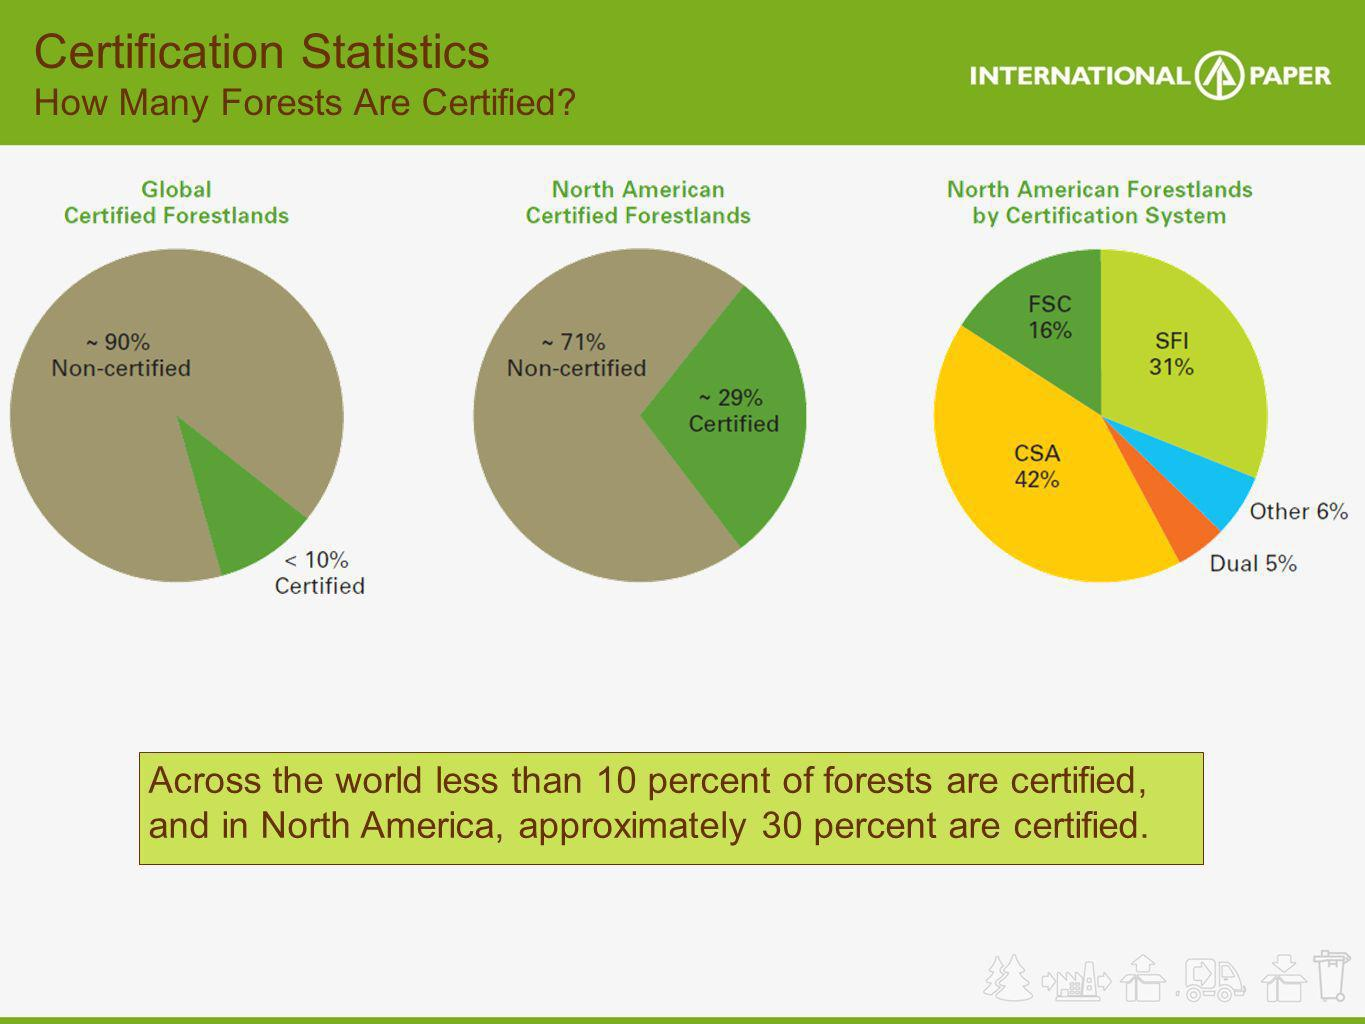 Certification Statistics How Many Forests Are Certified? Across the world less than 10 percent of forests are certified, and in North America, approxi